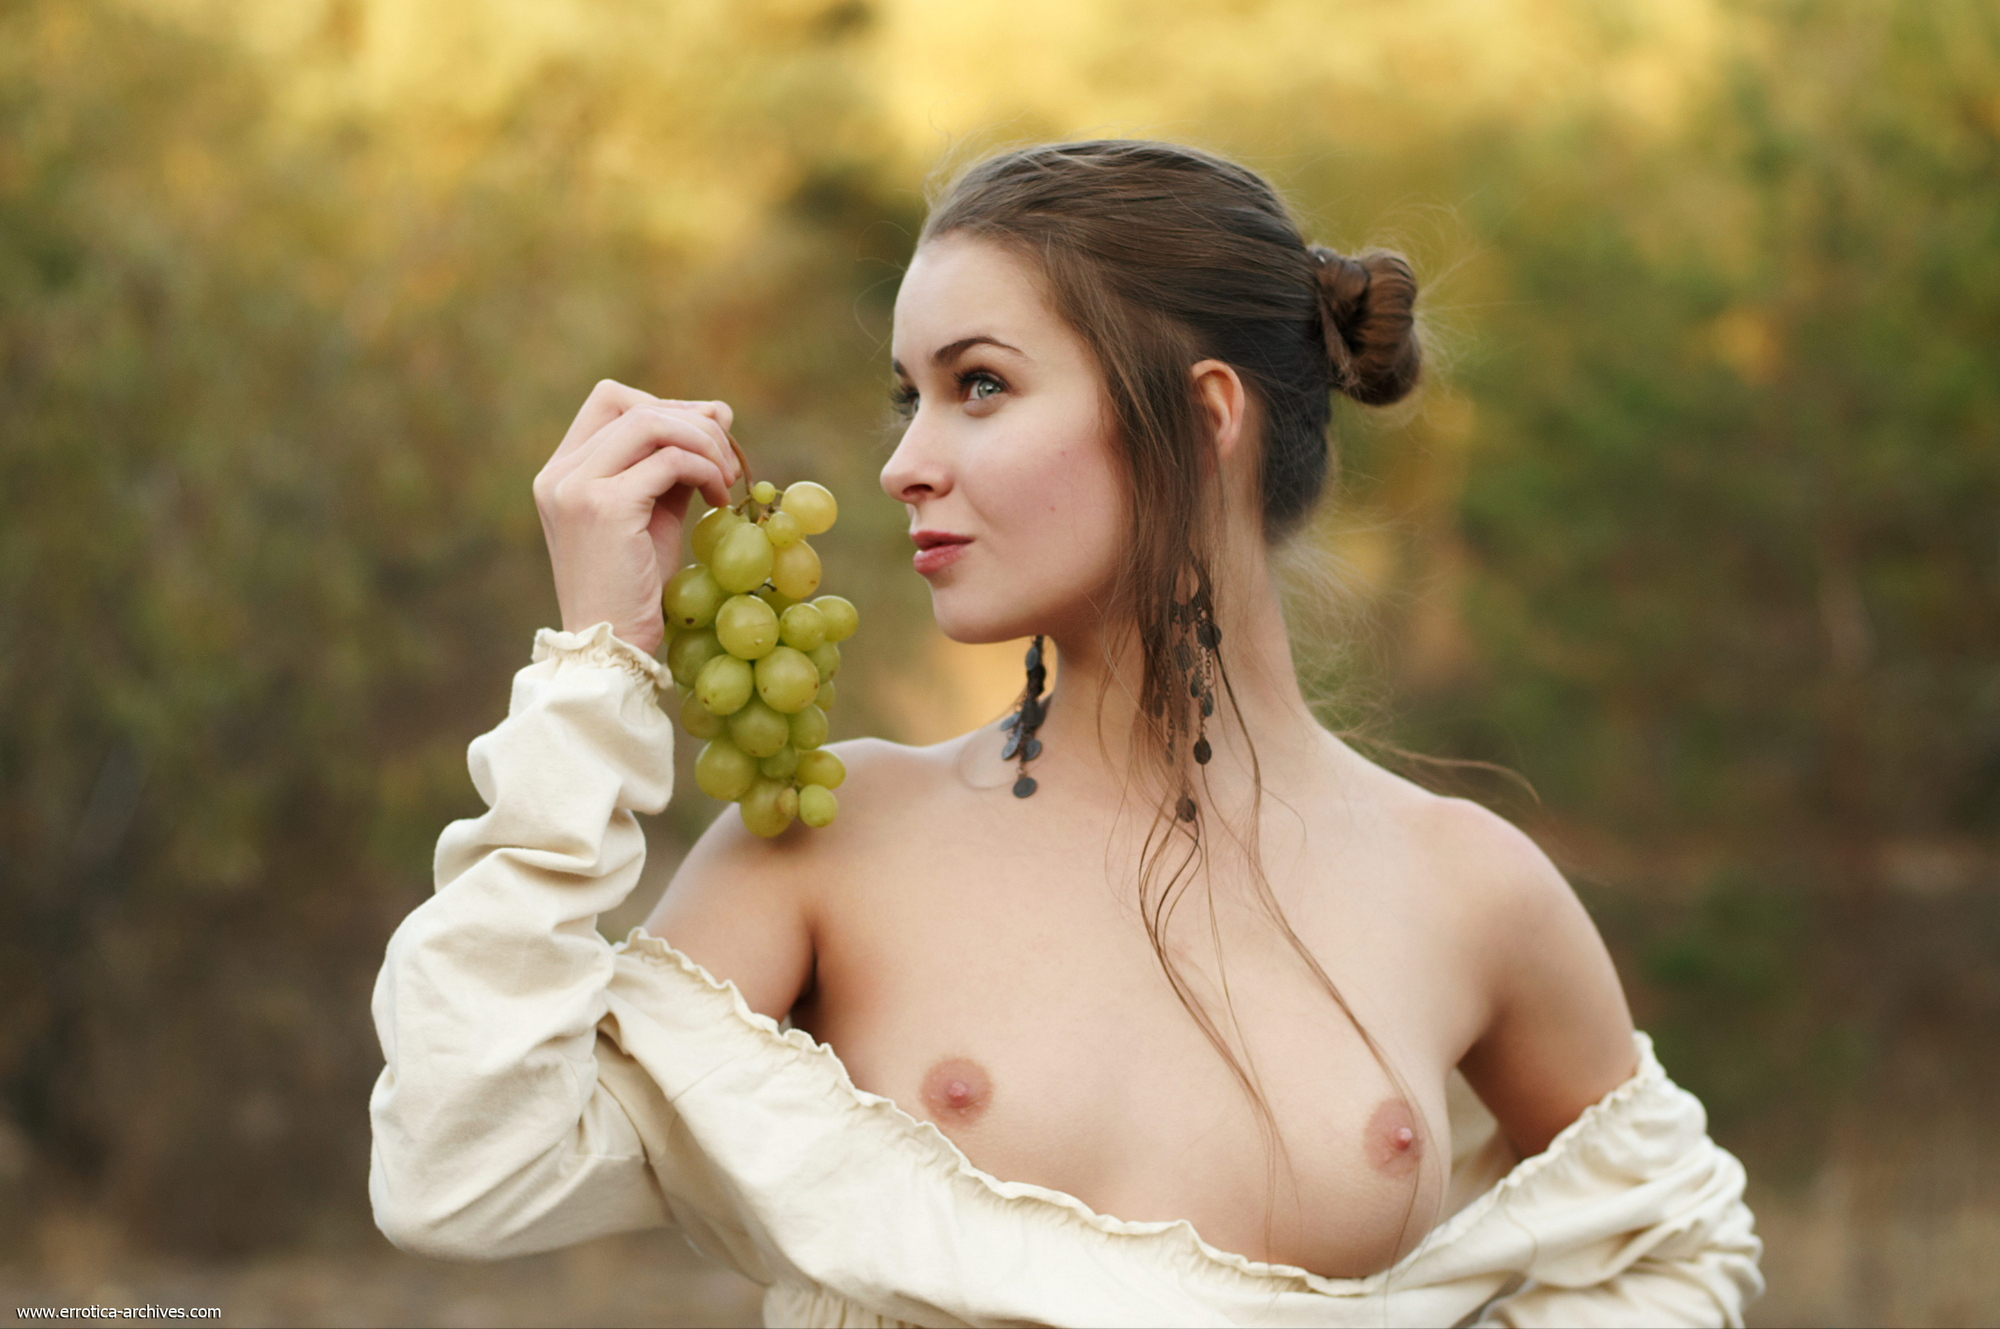 milana-naked-jug-wine-grapes-outdoor-errotica-archives-04